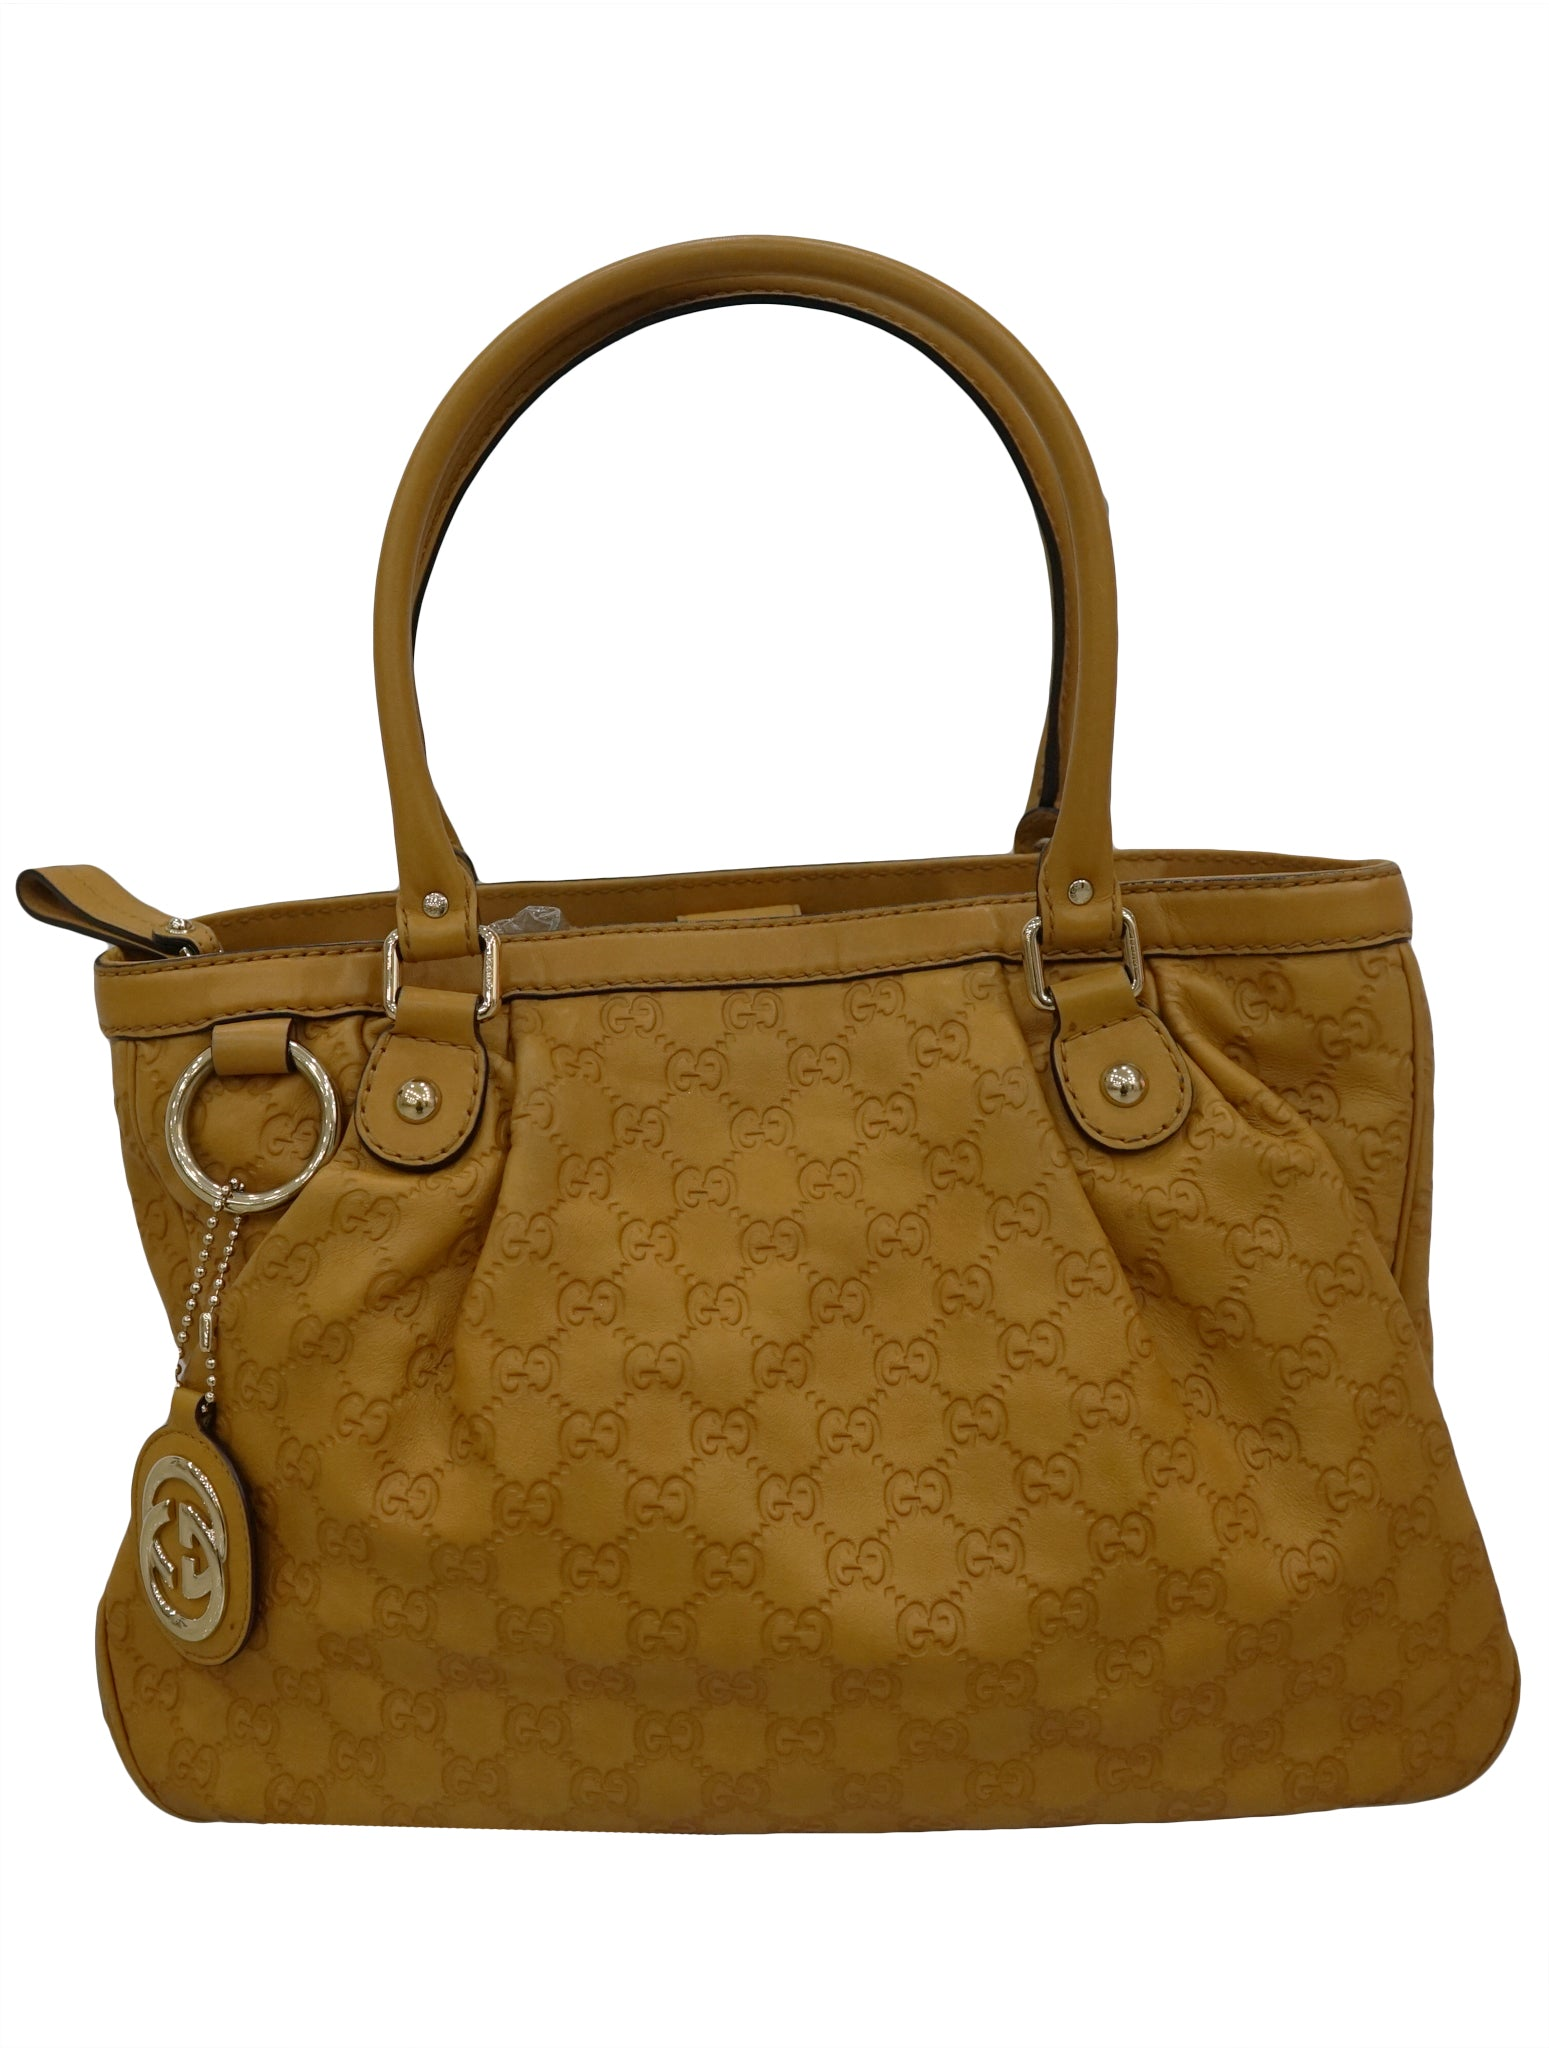 SUKEY GUCCISSIMA LEATHER TOTE BAG